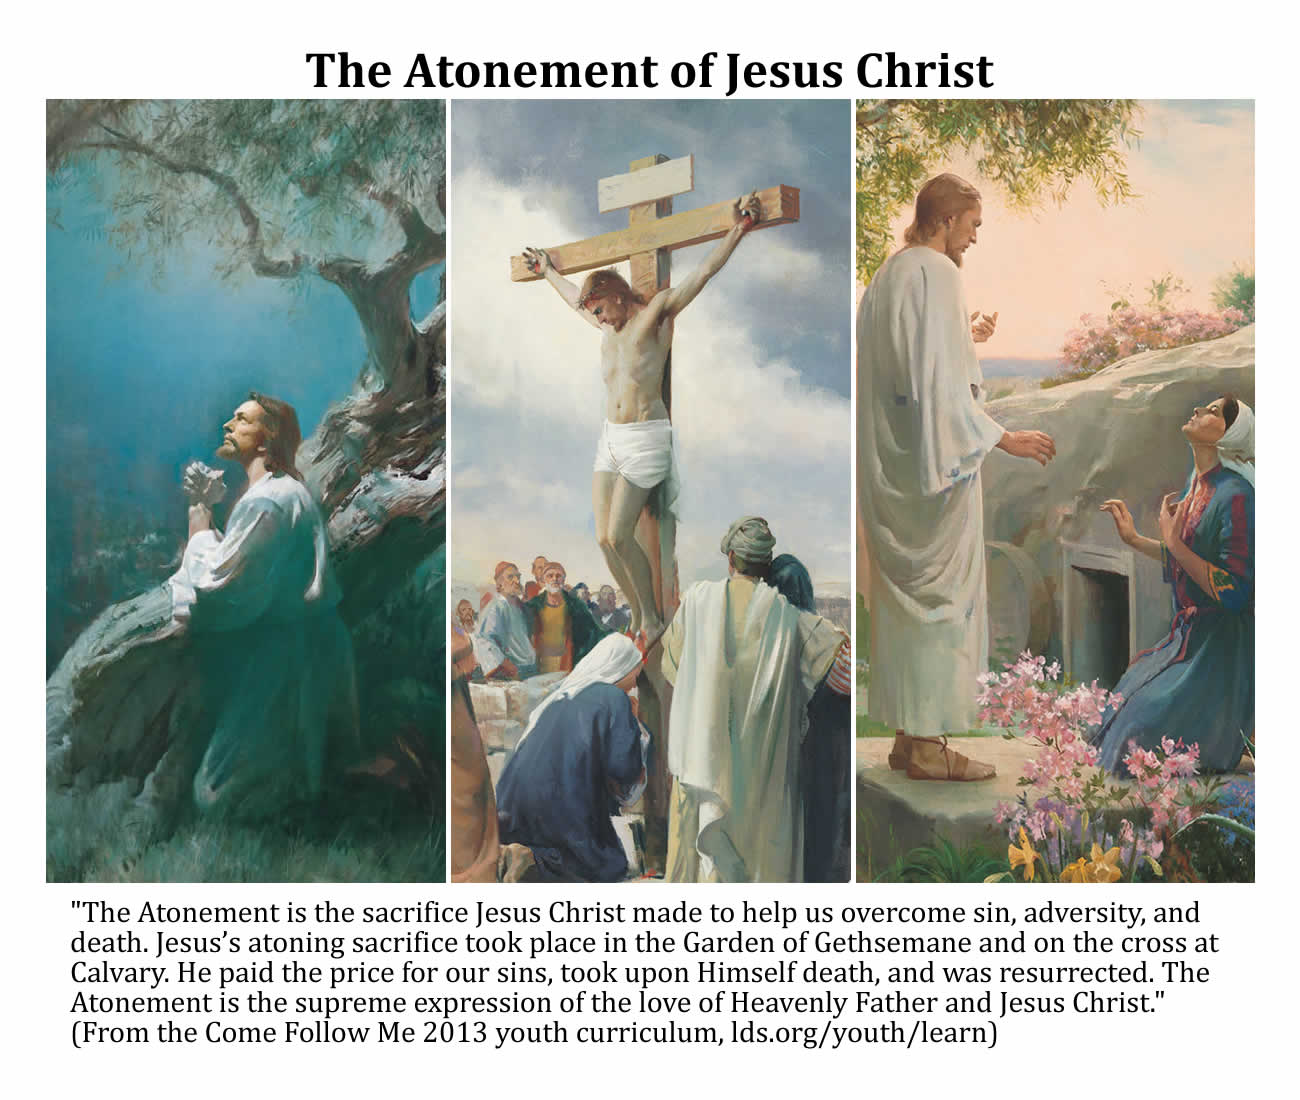 jesus christ and the atonement theories The satisfaction theory of atonement  the then-current ransom theory of the atonement held that jesus  other theories on the nature of christ's atonement.